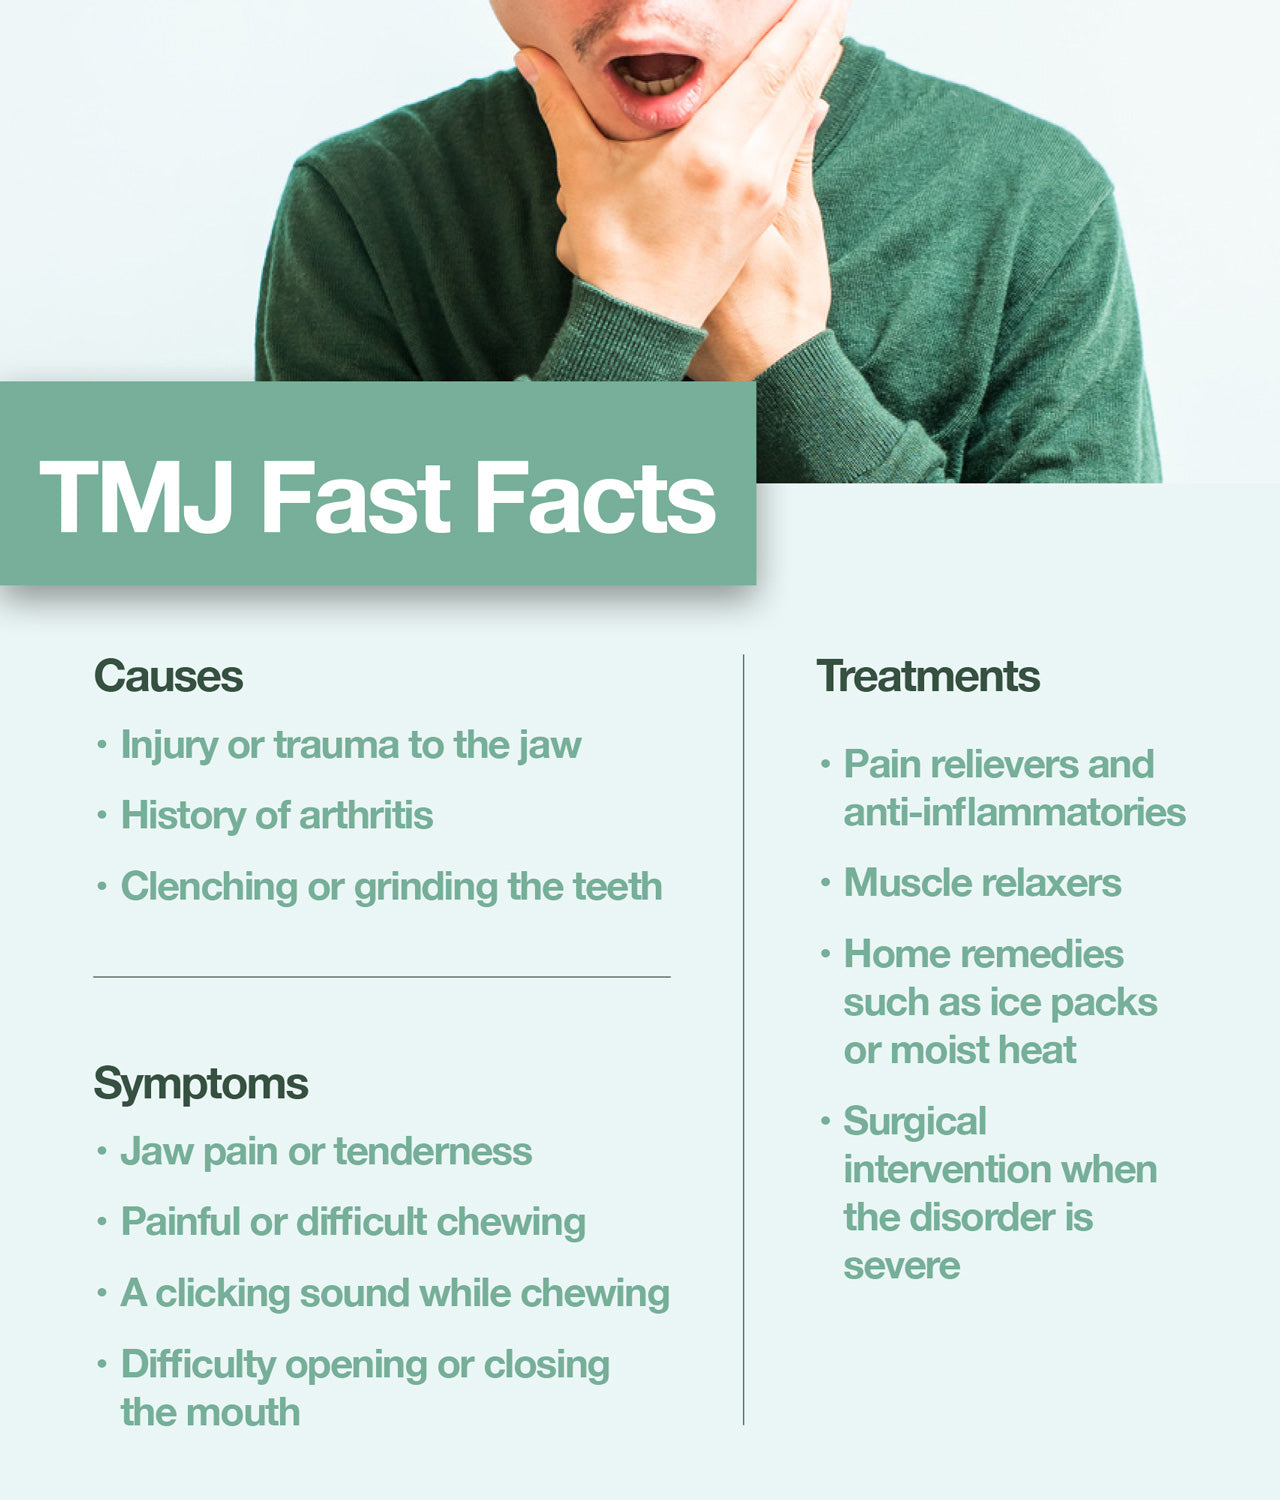 TMJ disorder is a pain in the jaw and the muscles that control jaw movement